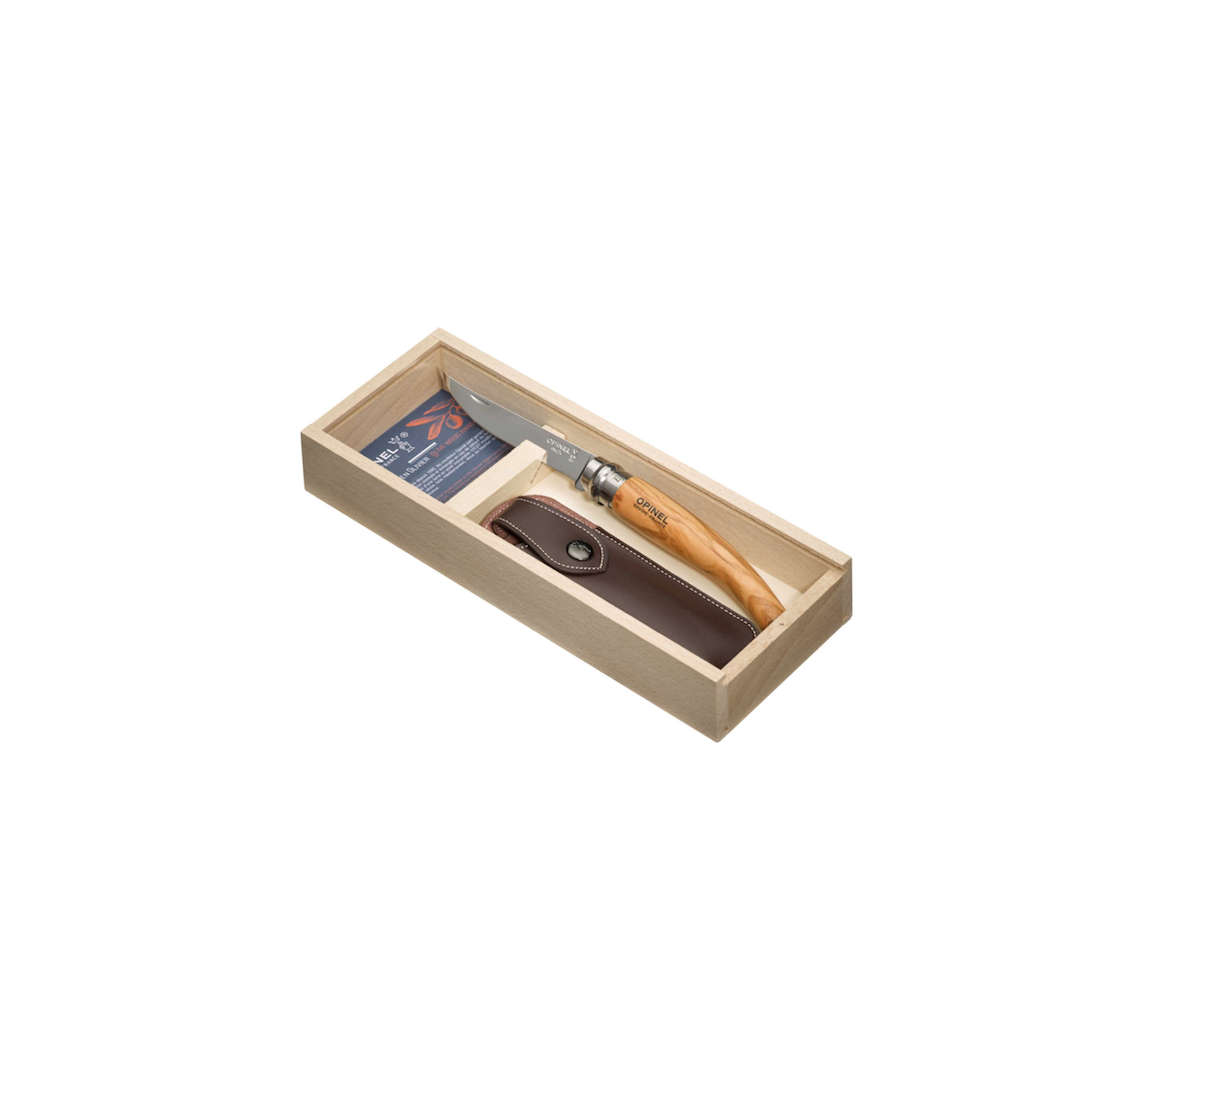 OPINEL N°8 COUTEAU PLUMIER MANCHE OLIVIER ETUI NOX HOOD COUPE RANDONNE CAMPING CHASSE PECHE DECOUPE CUISINE 3123840010040 HOME COOKING KITCHEN NATURE INOX HOOD COMASOUND KARTEL CSK ONLINE